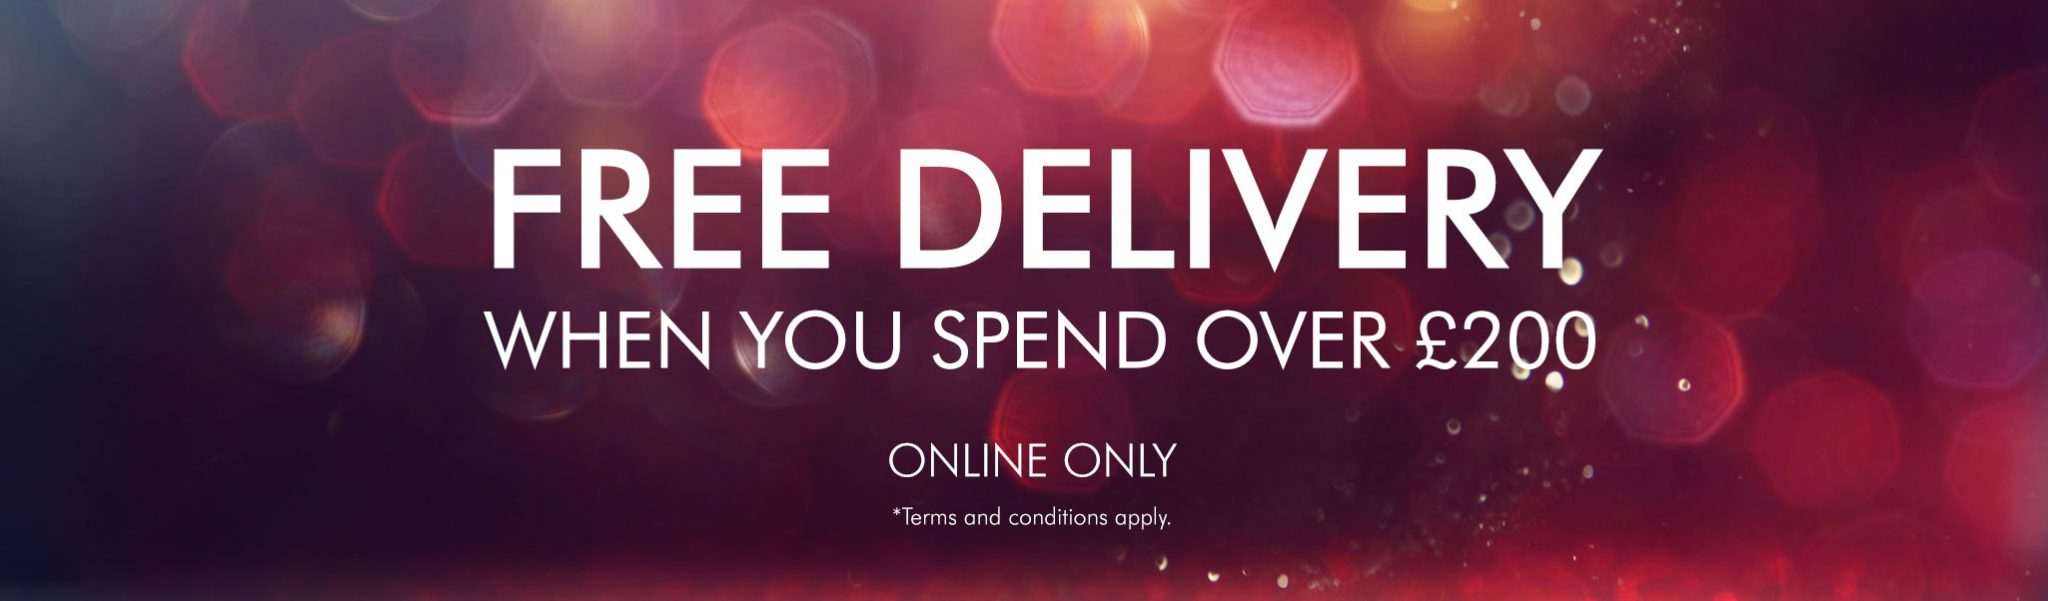 Drakes Jewellers, Jewellers Plymouth, Free Delivery